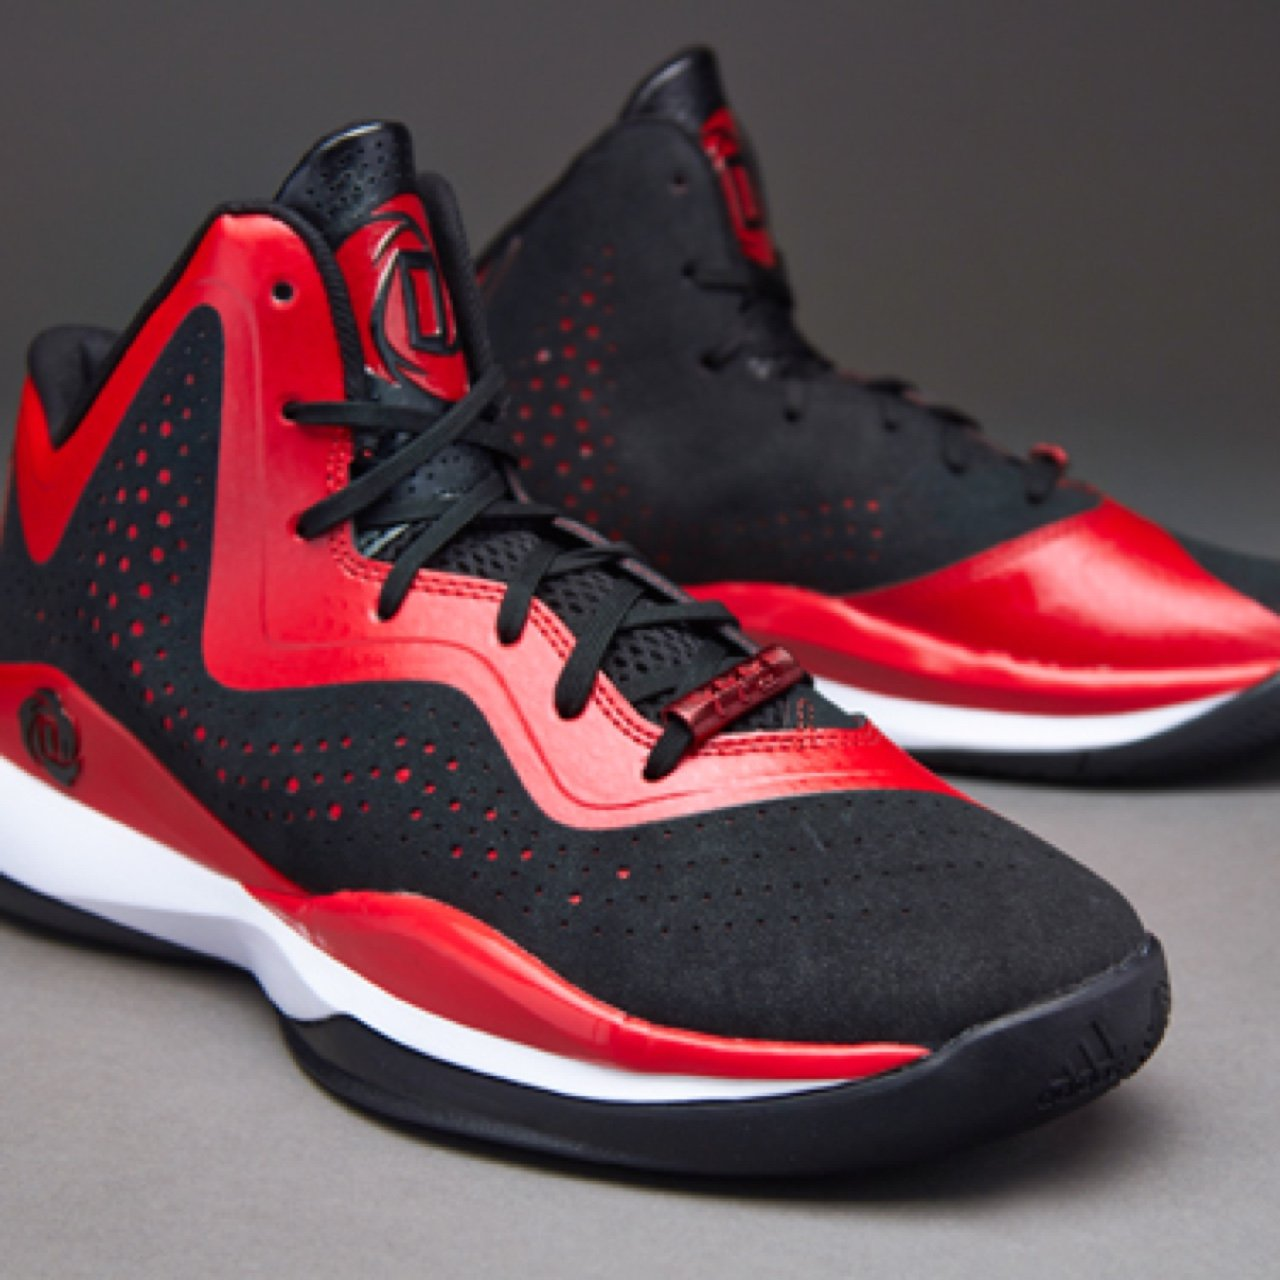 sneakers for cheap bc3bb 3f5d2 billyclark. 3 years ago. United Kingdom. Adidas d-rose 773 ...